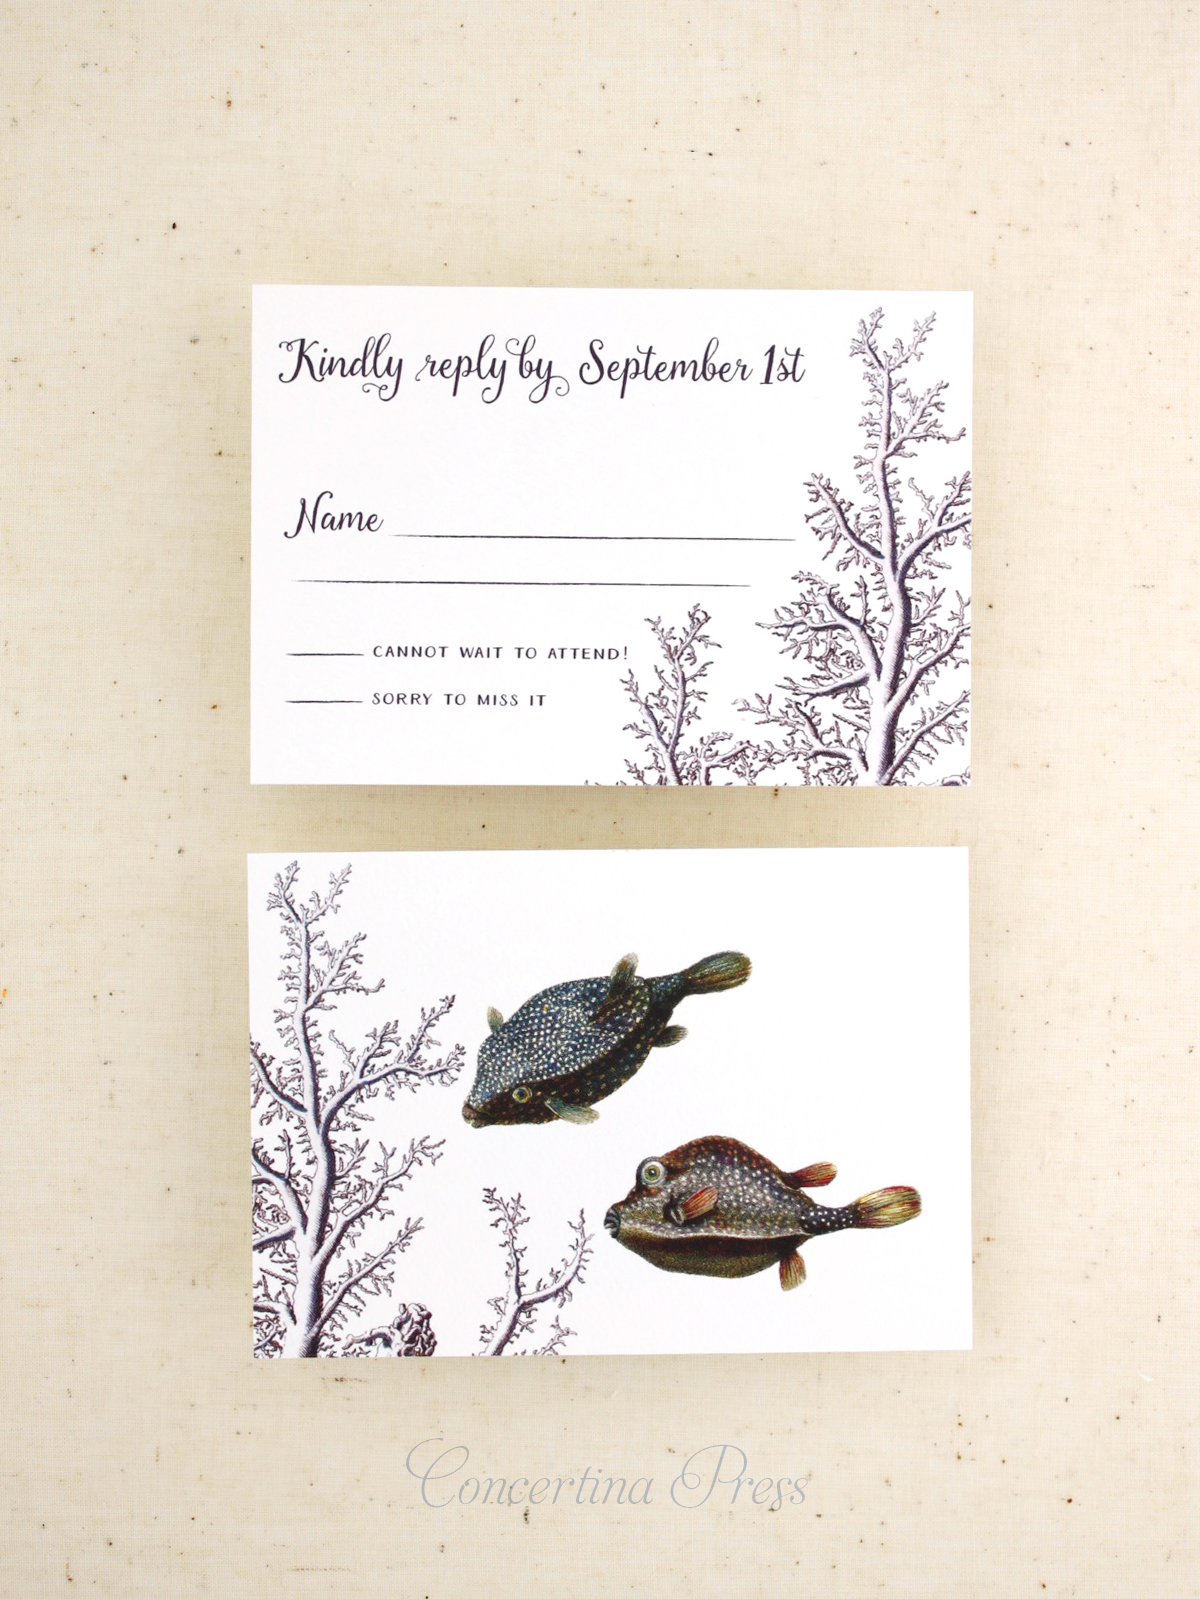 unique under the sea RSVP cards for your aquarium wedding from Concertina Press